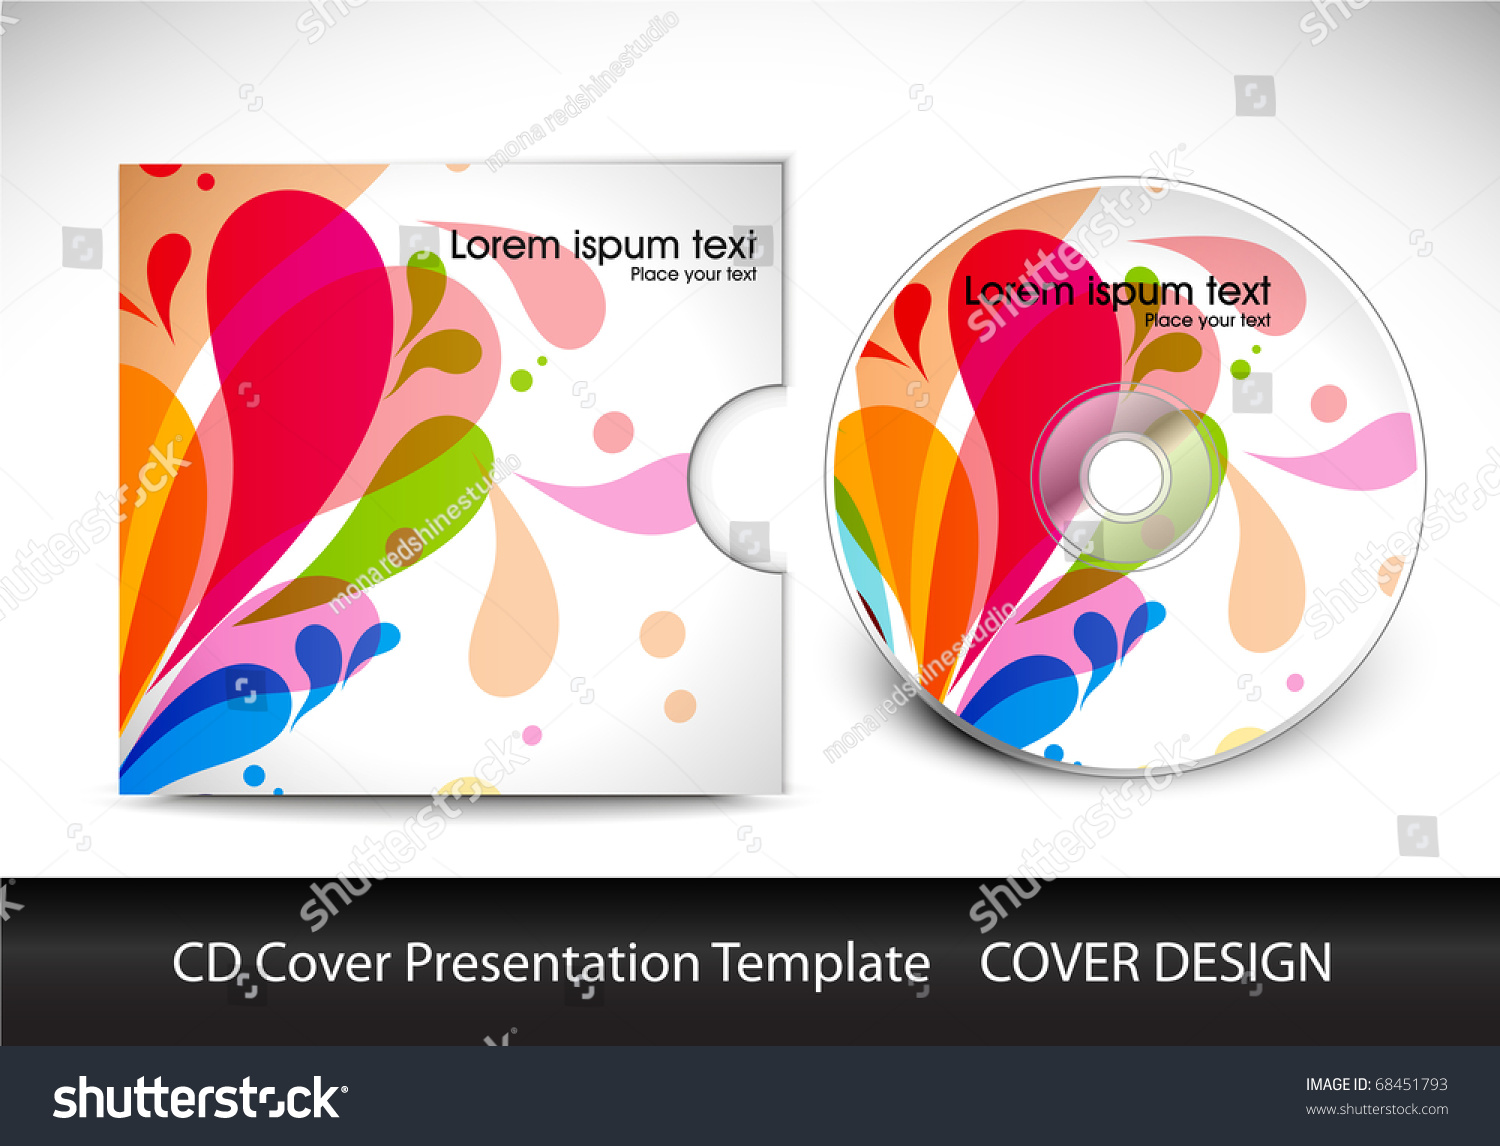 cd cover layout design template preview editable stock vector illustration 68451793. Black Bedroom Furniture Sets. Home Design Ideas